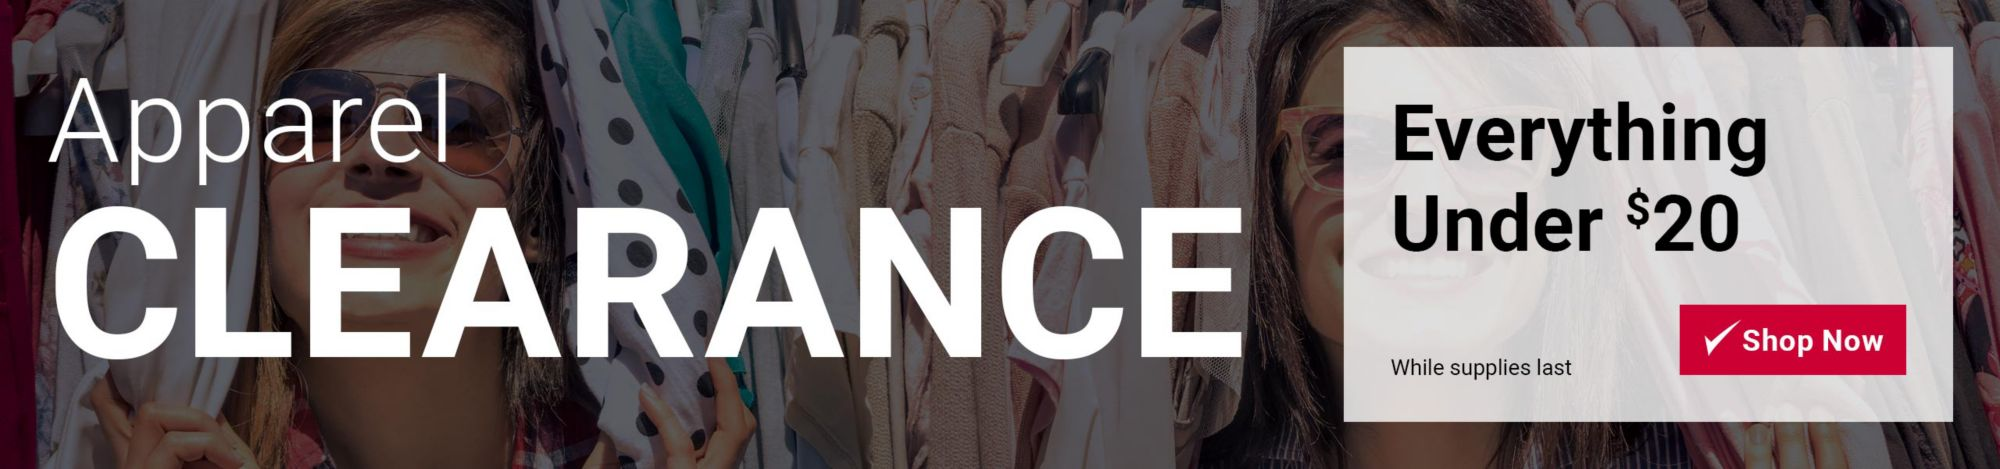 Apparel clearance. Everything under $20. Click here to shop now. While supplies last.